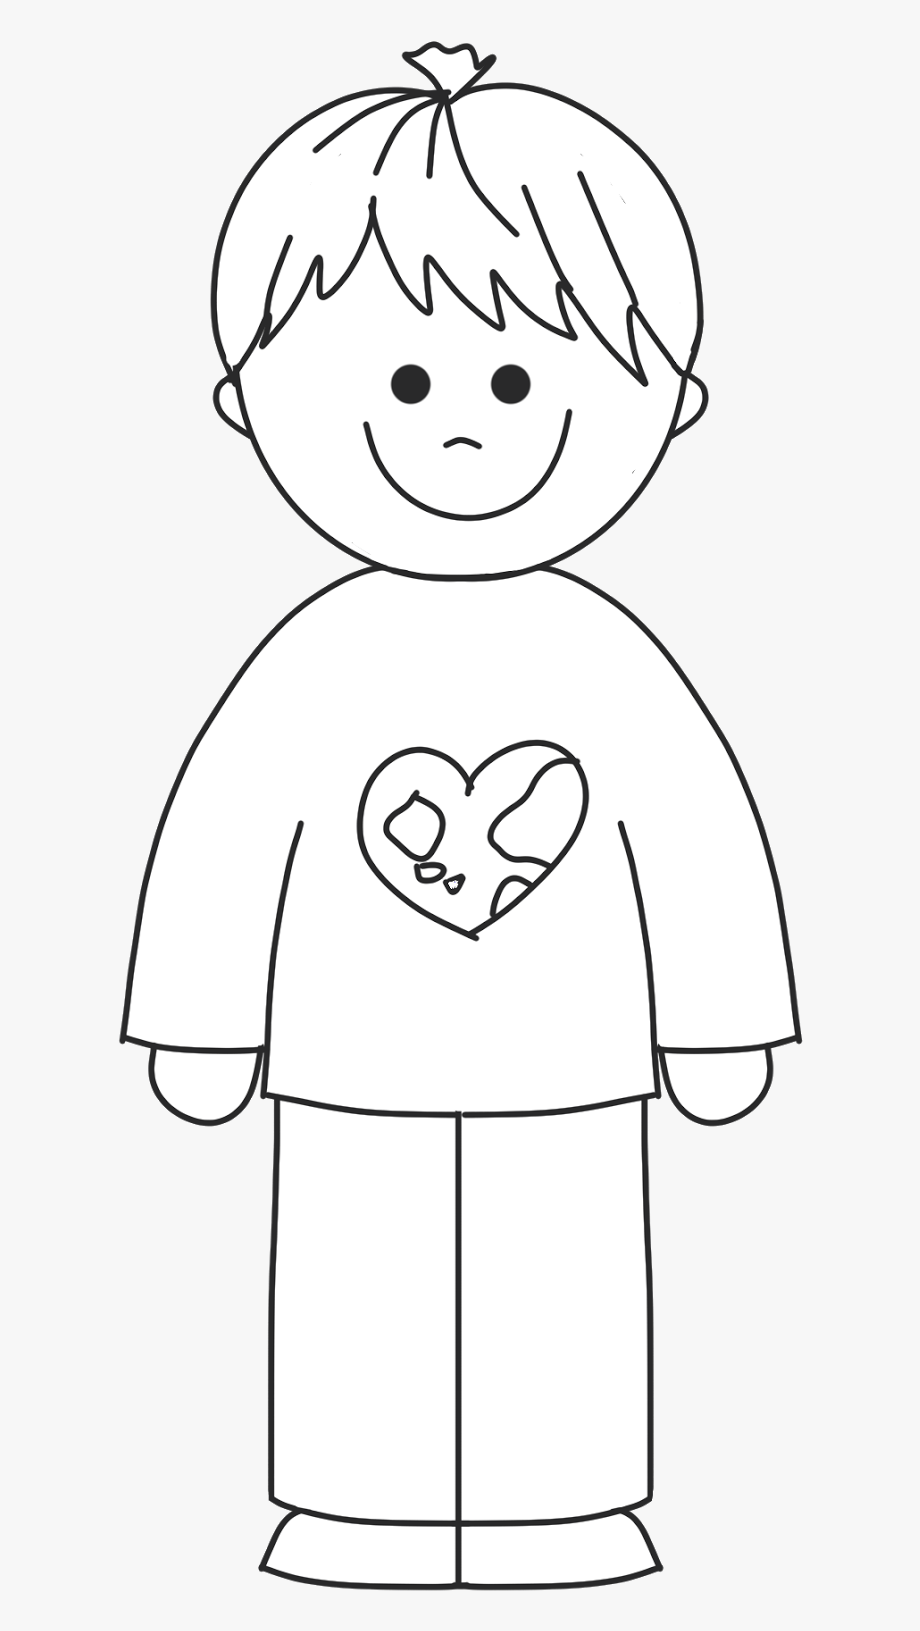 Pajamas Clipart Black And White.